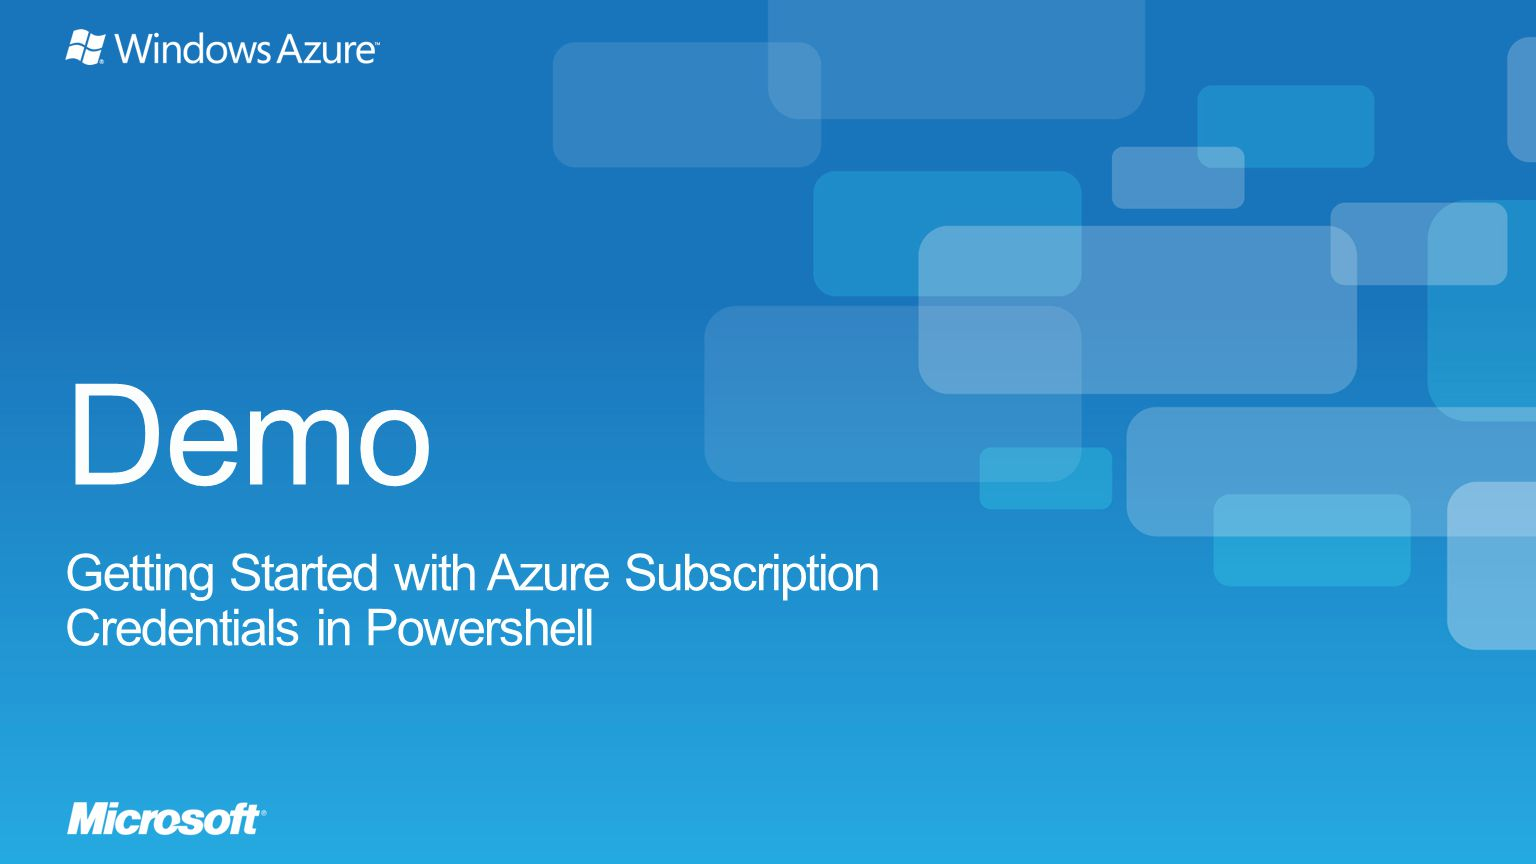 Demo Getting Started with Azure Subscription Credentials in Powershell